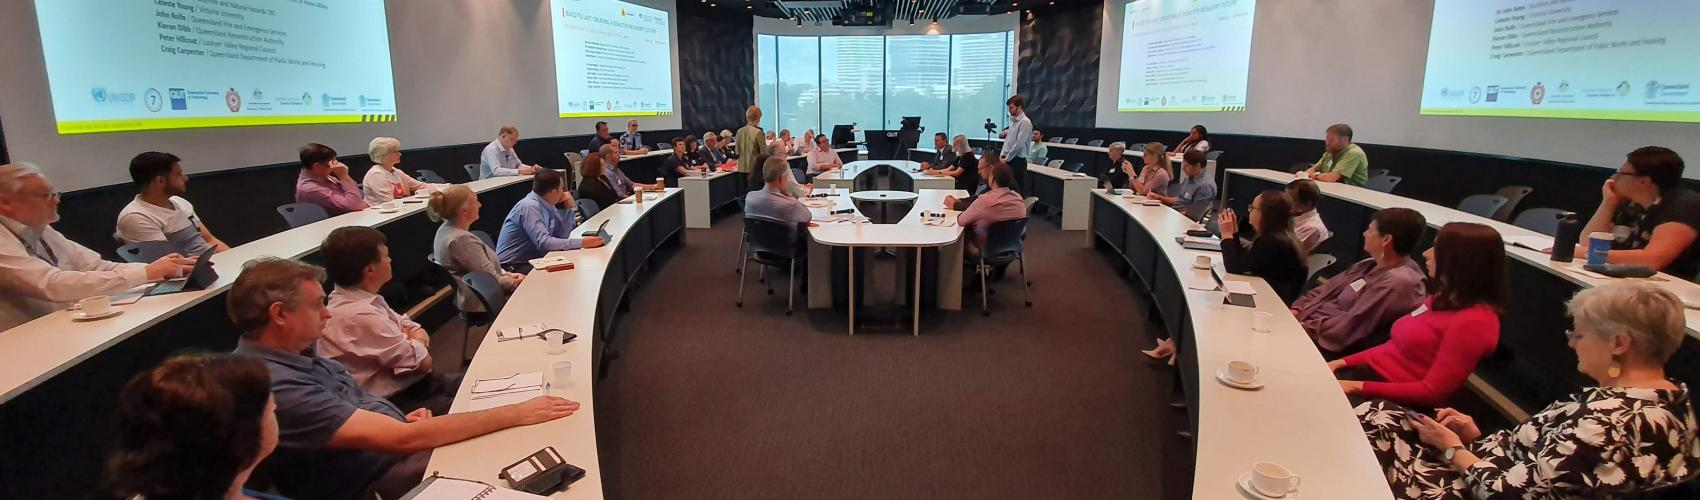 A forum discussion at Queensland University of Technology for the International Day of Disaster Reduction.